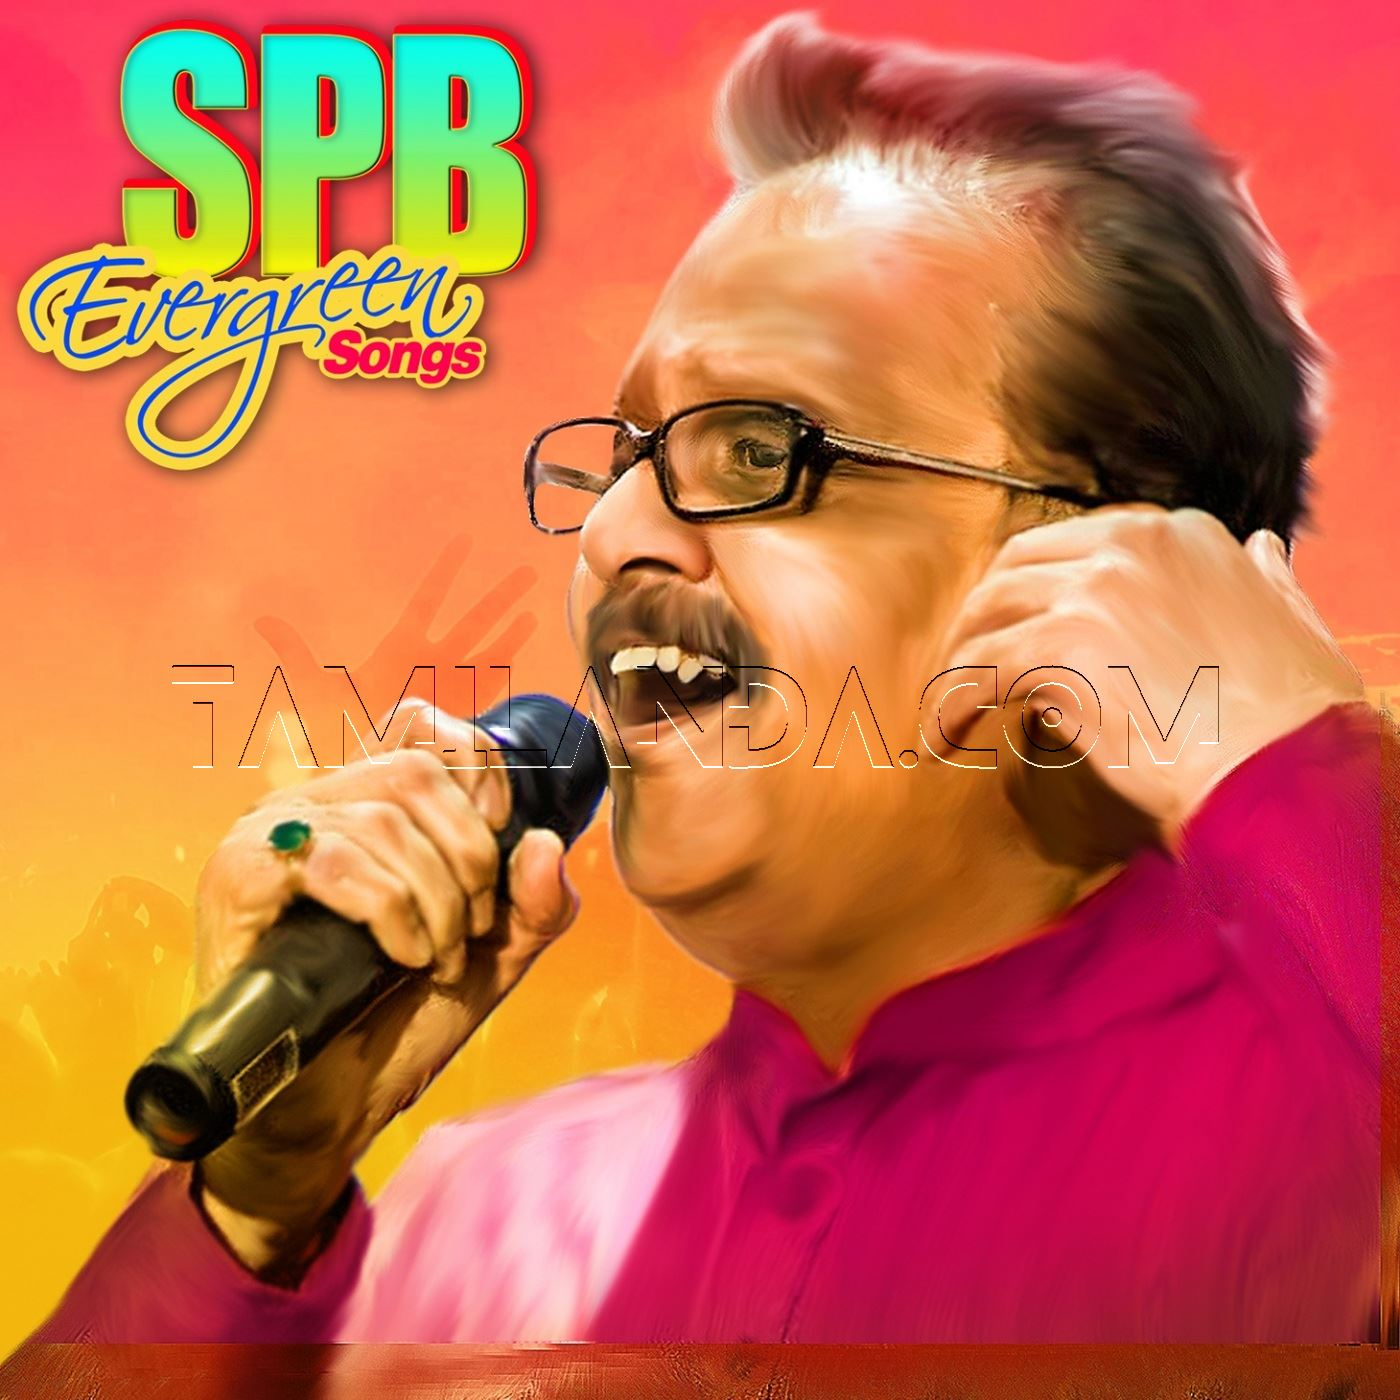 S.P.B. Evergreen Songs FLAC Songs